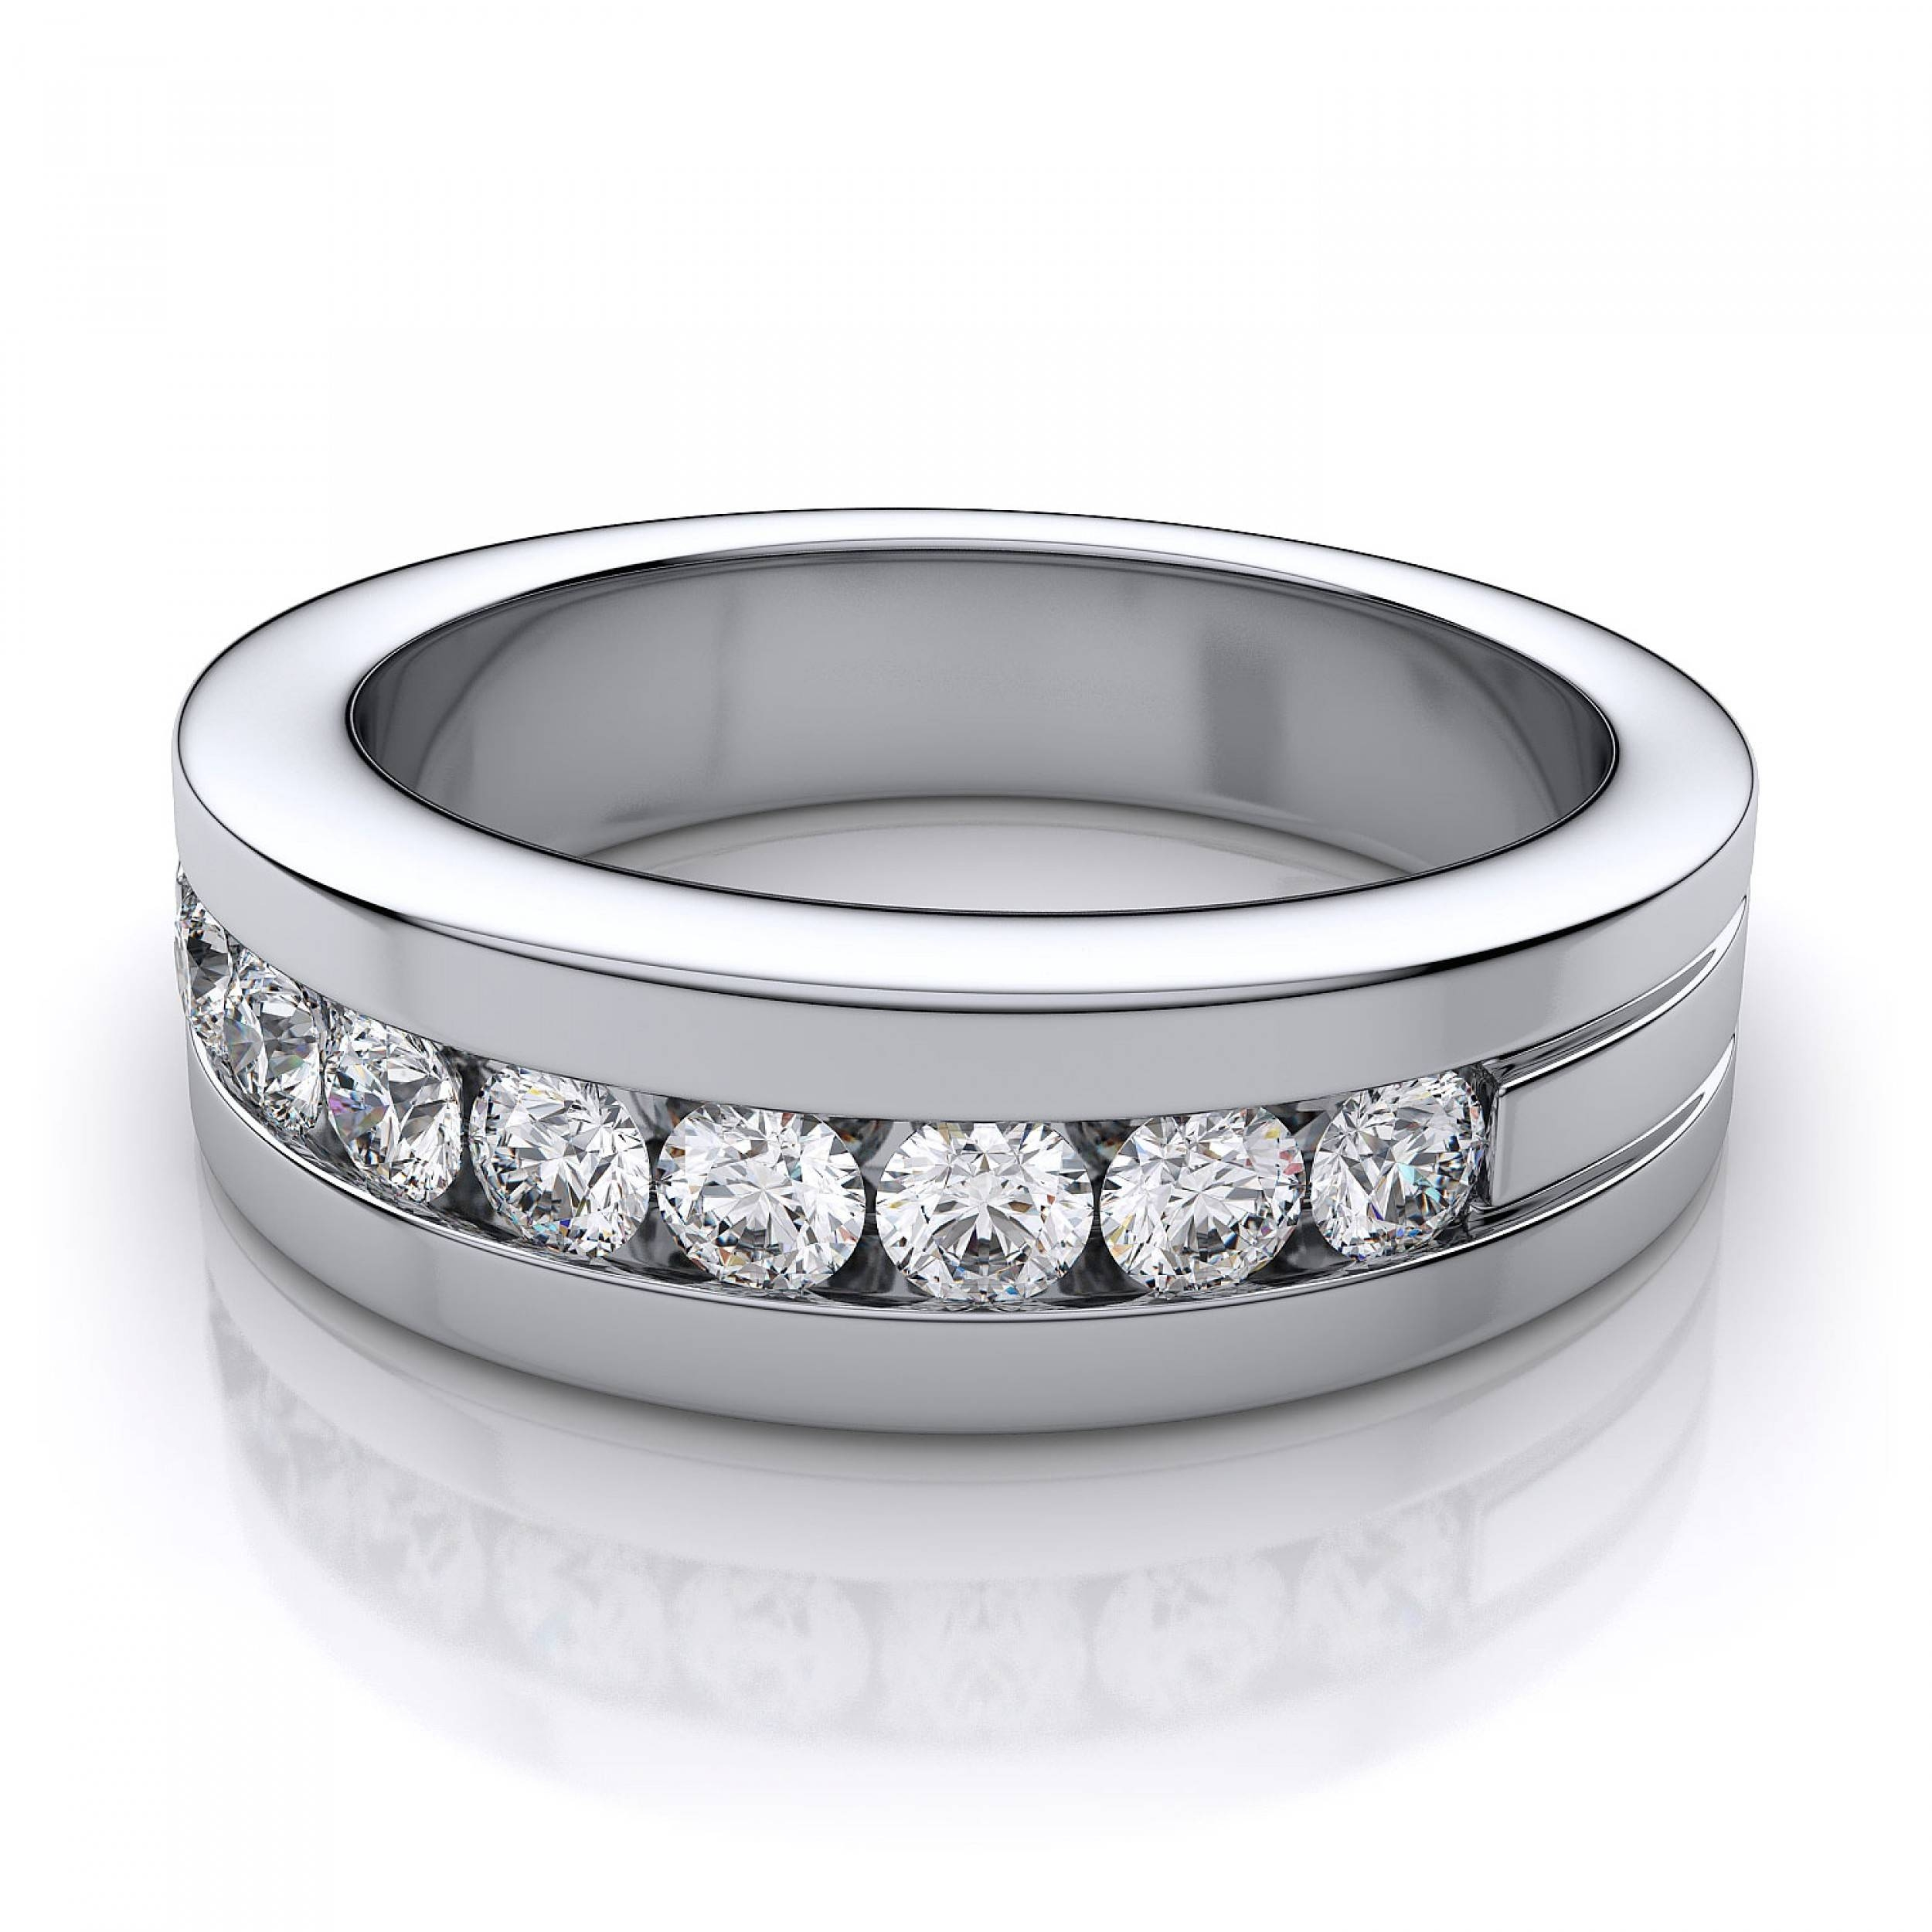 Ctw Mens Channel Set Vs,g H Diamond Ring In Platinum Within Platinum Diamond Mens Wedding Rings (View 10 of 15)